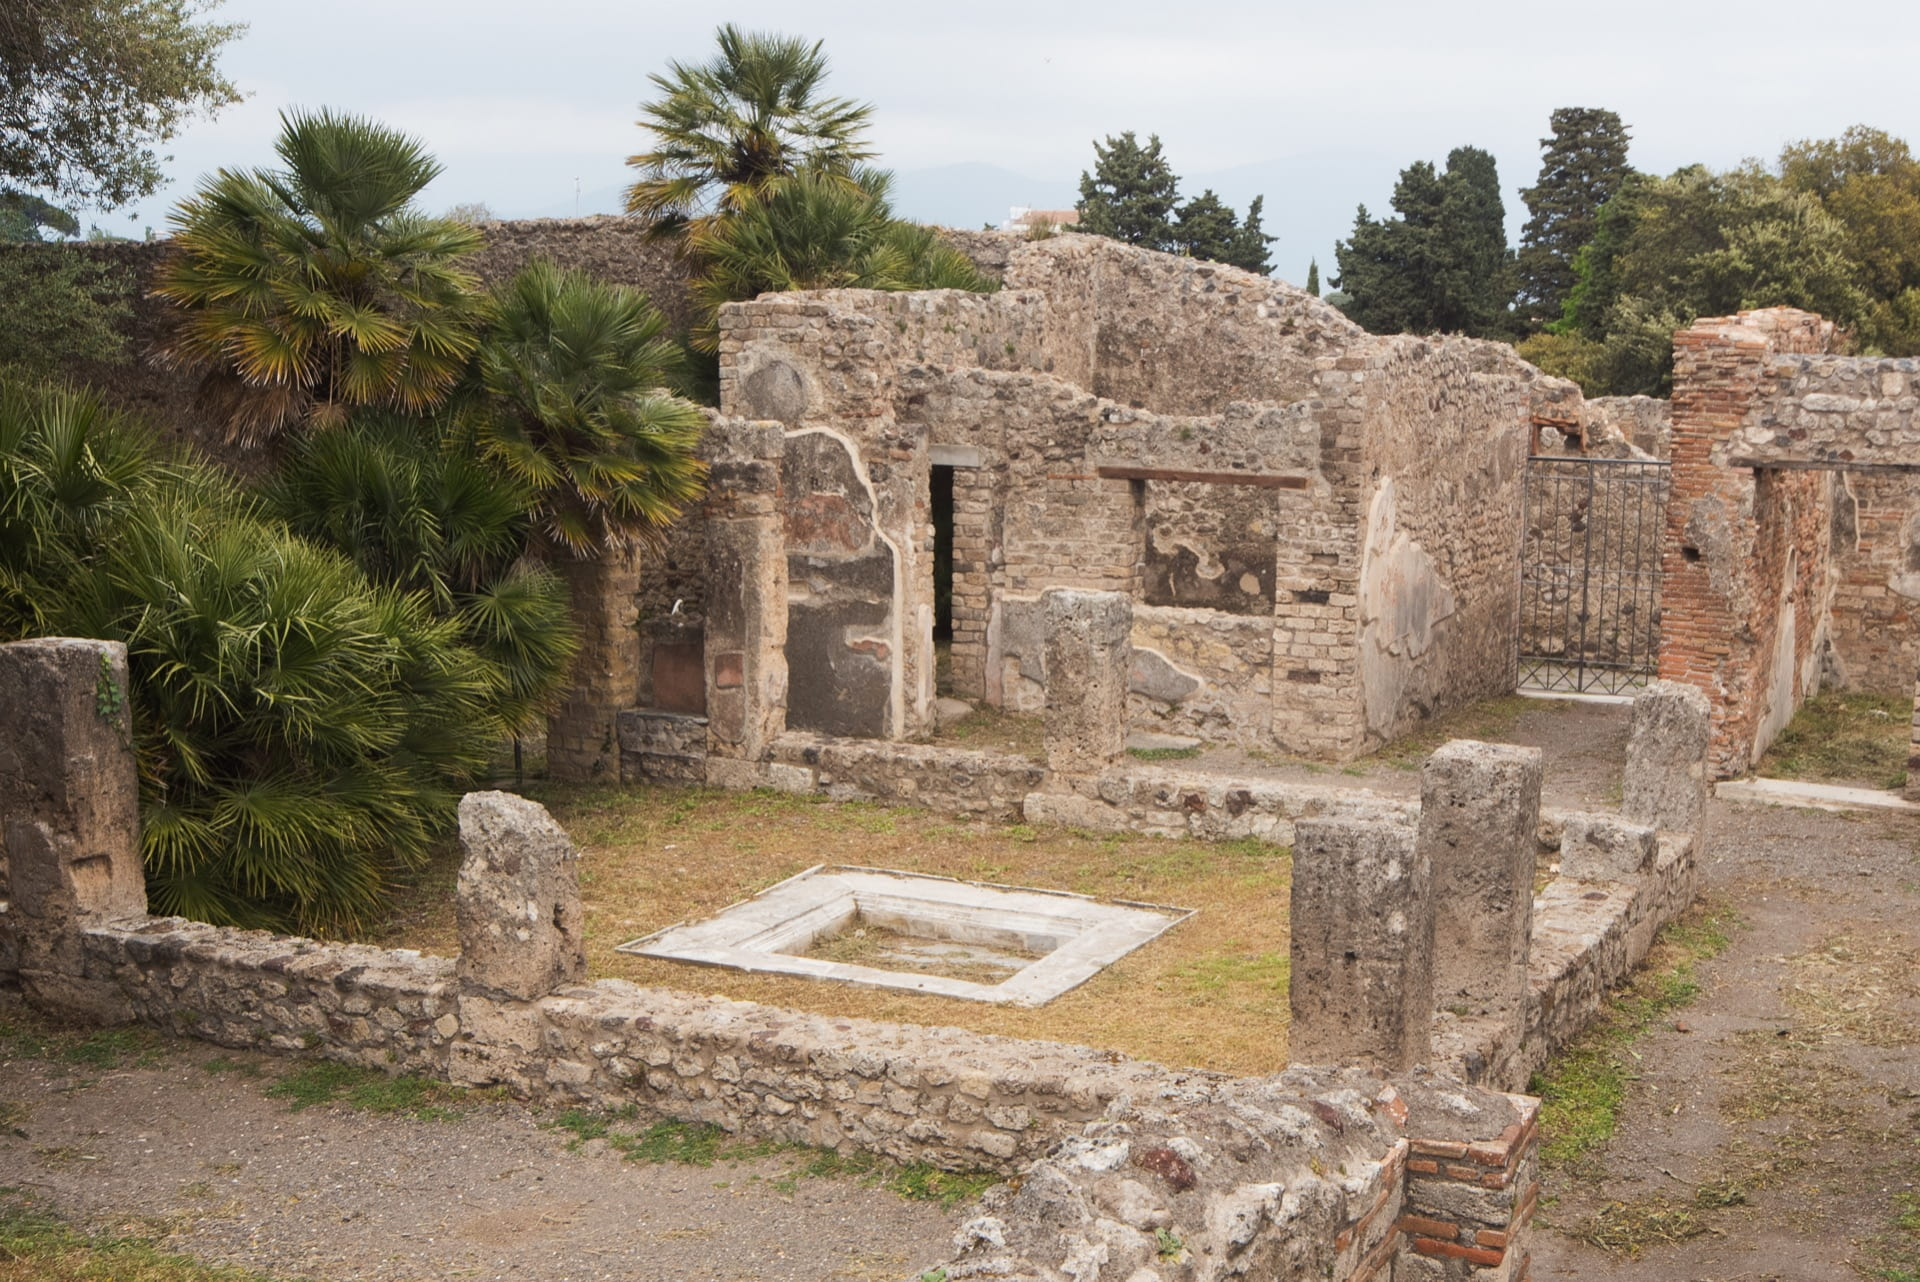 Standing architecture at the Casa della Regina Carolina, Pompeii (VIII 3.14), showing the atrium in the foreground. Photograph by Pasquale Sorrentino.